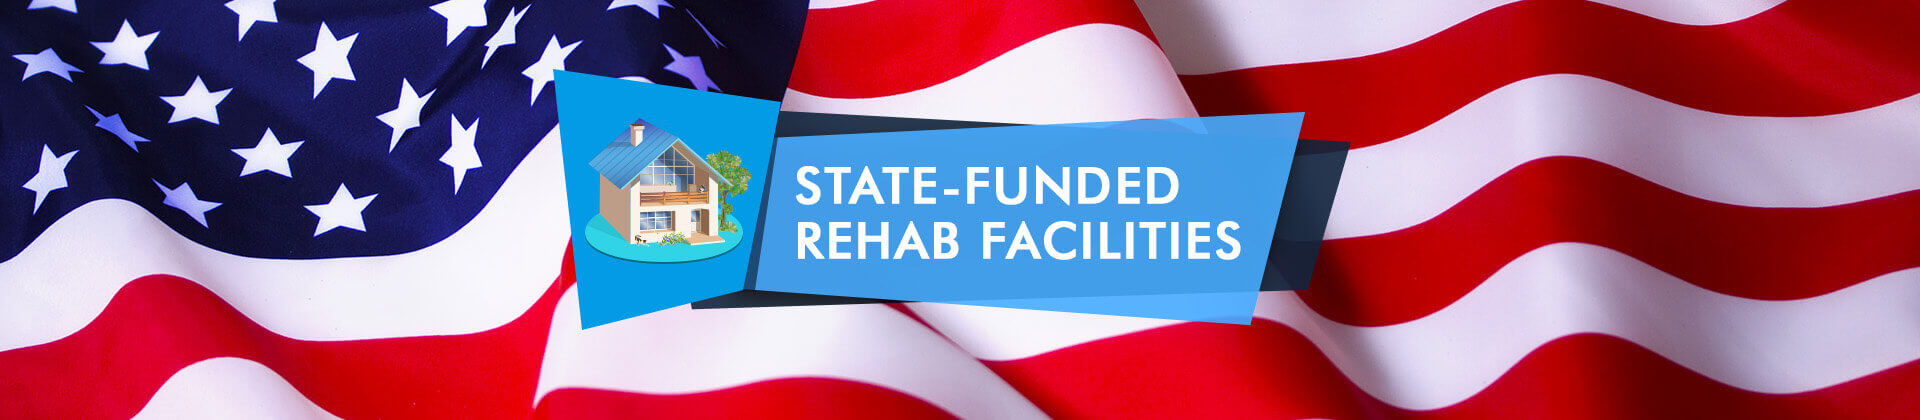 state-funded rehabilitation